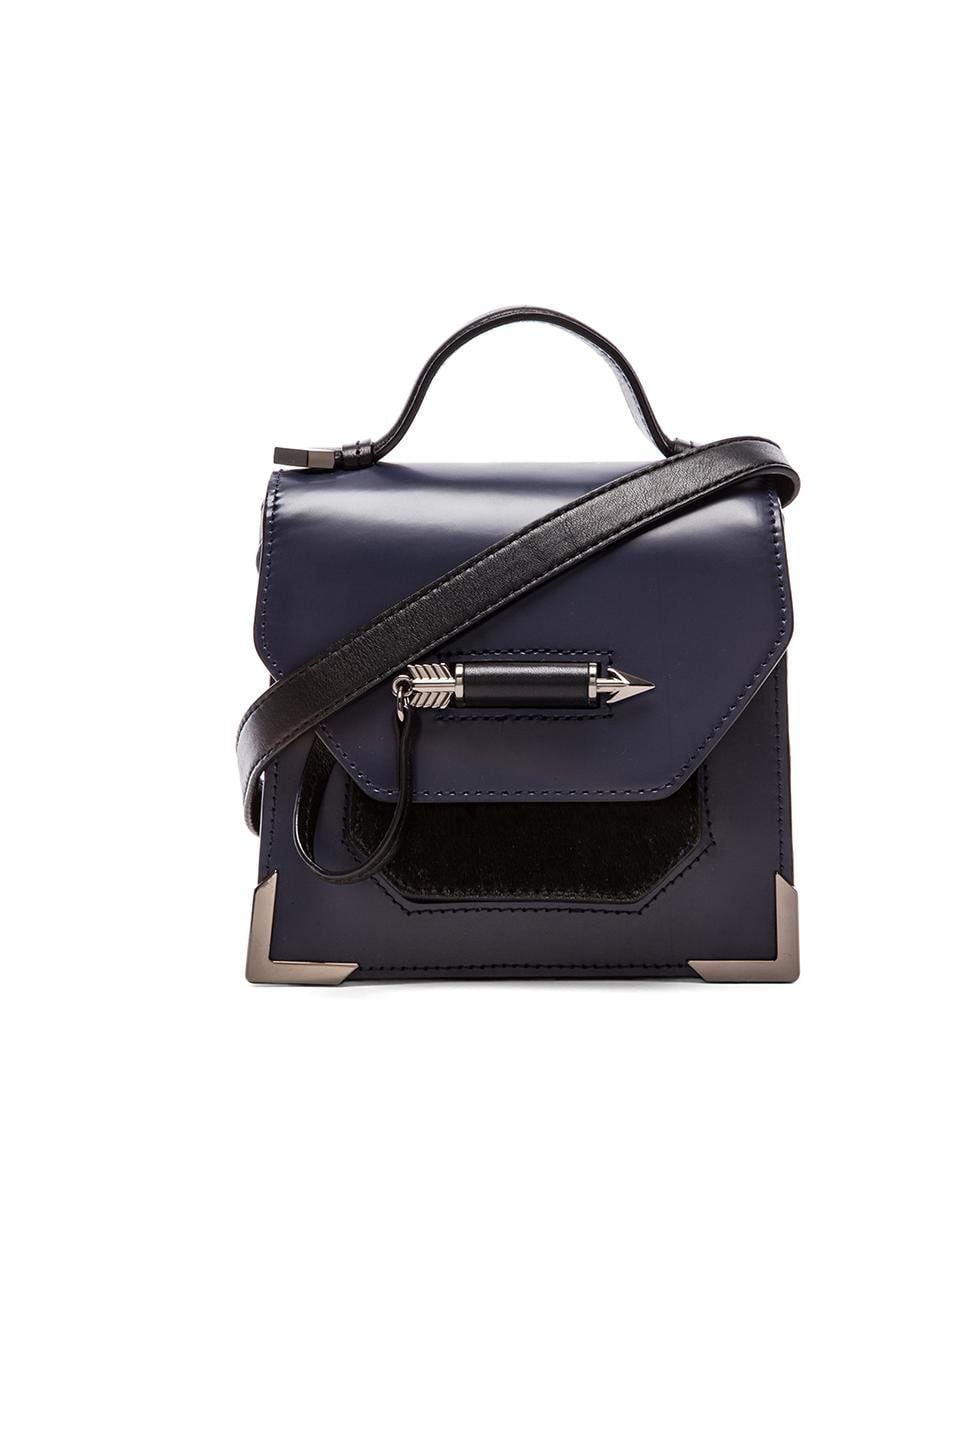 Mackage Rubie Mini Satchel in Indigo